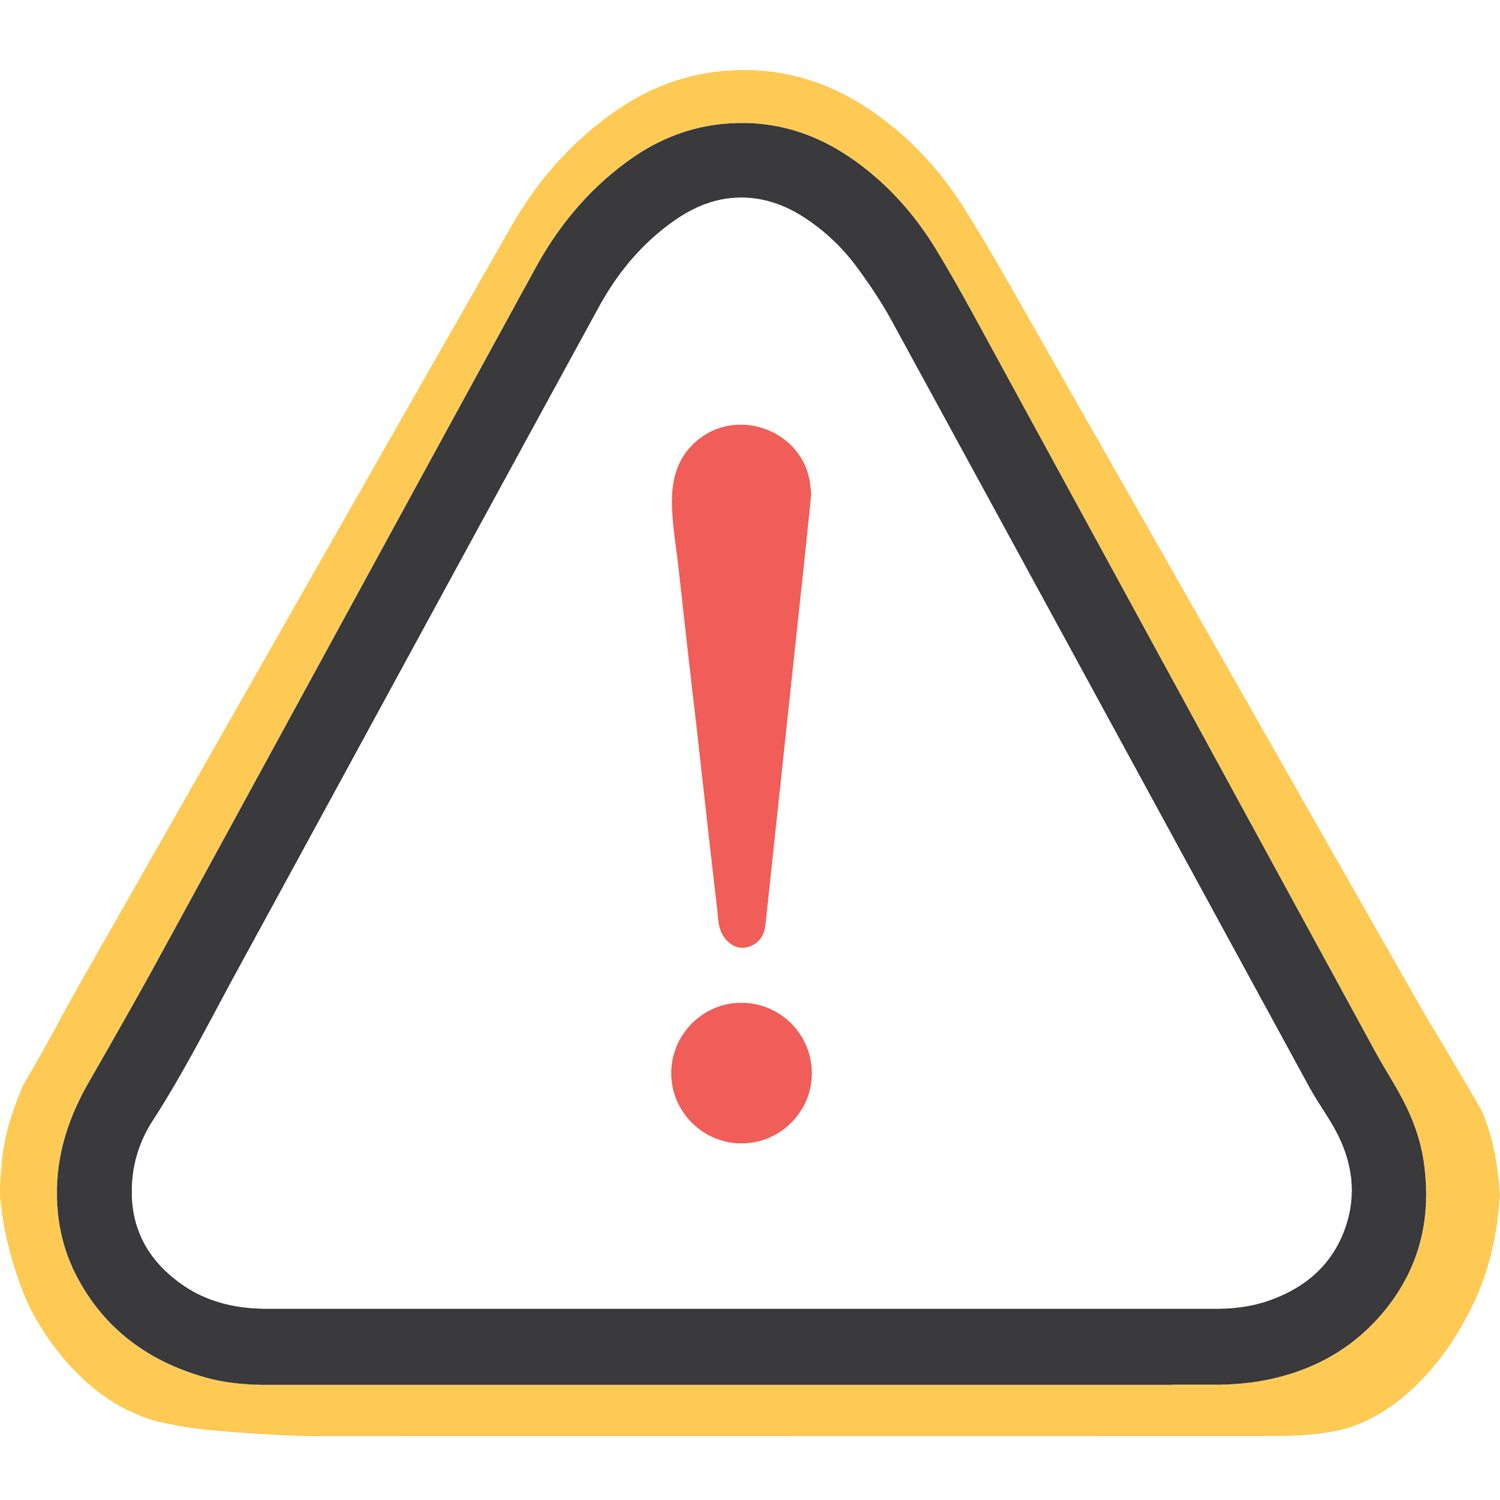 Danger-Icon-01.png